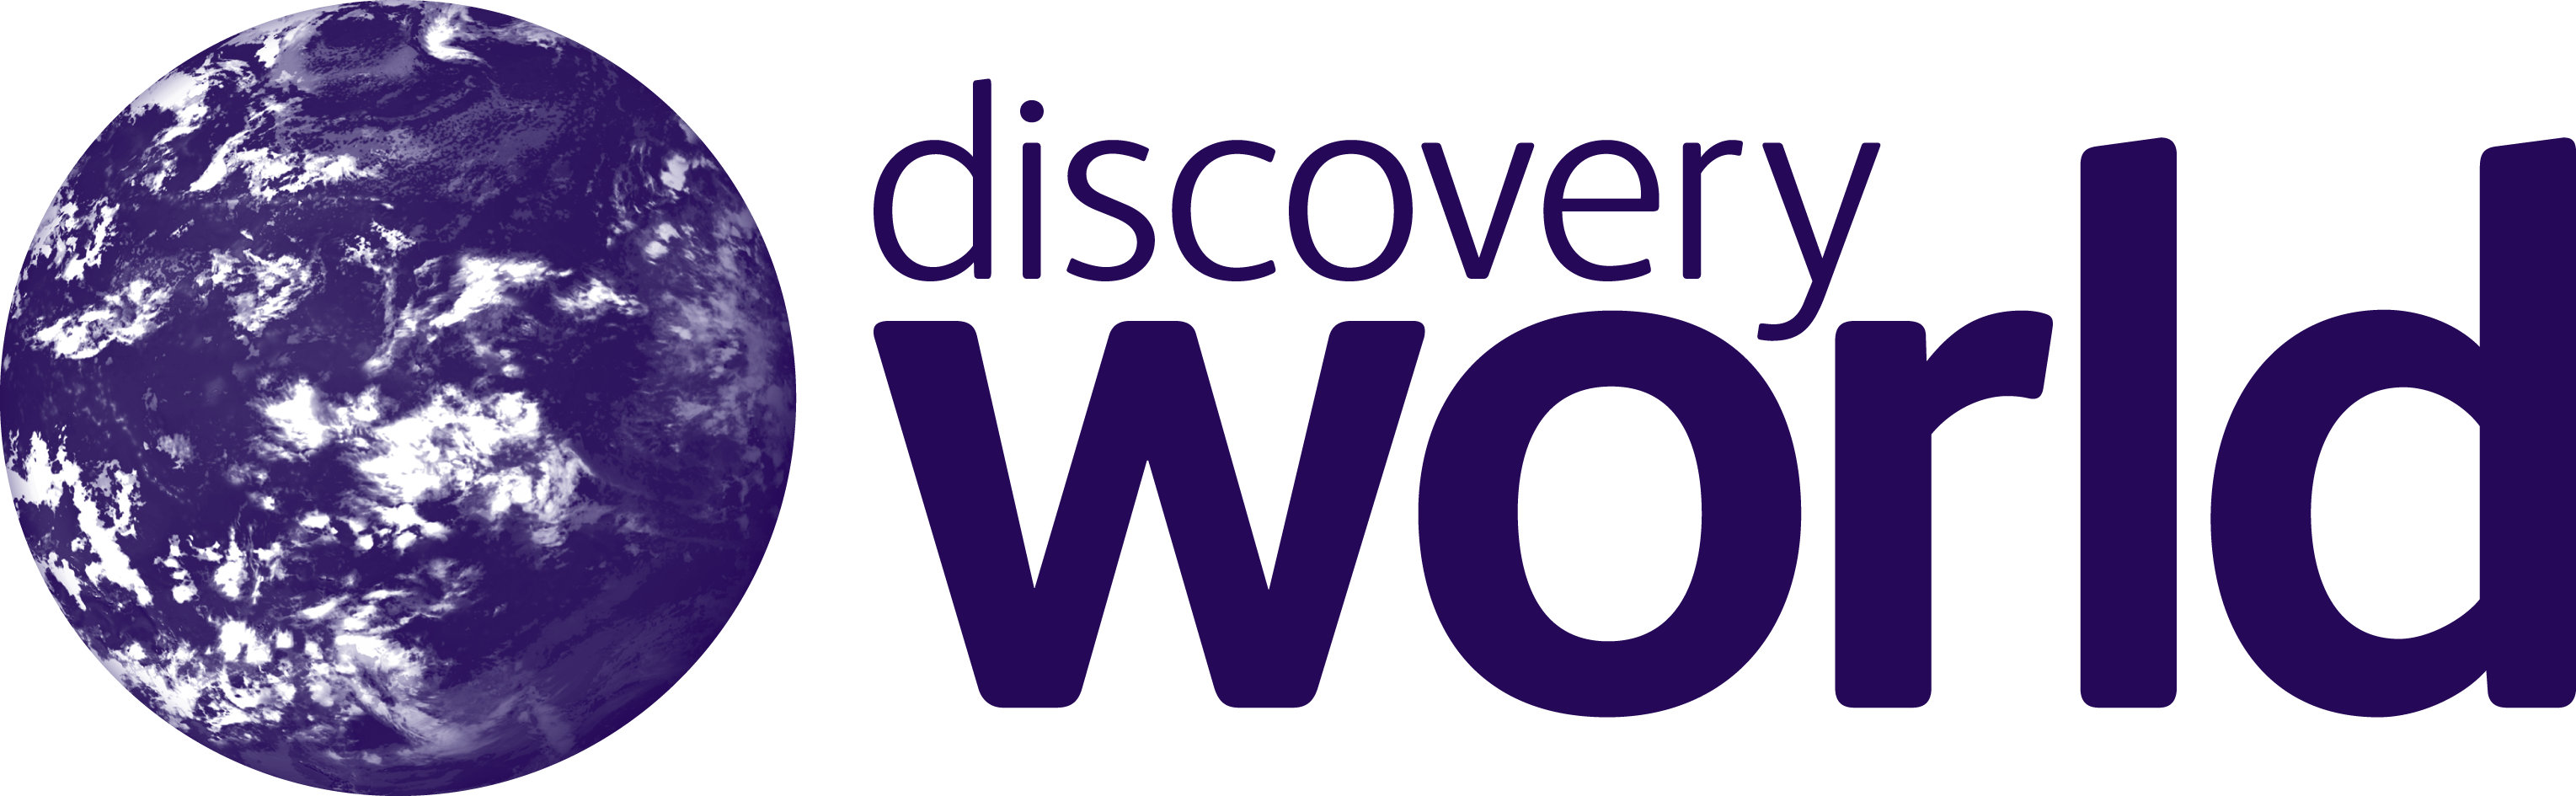 Discovery World - Logopedia, the logo and branding site